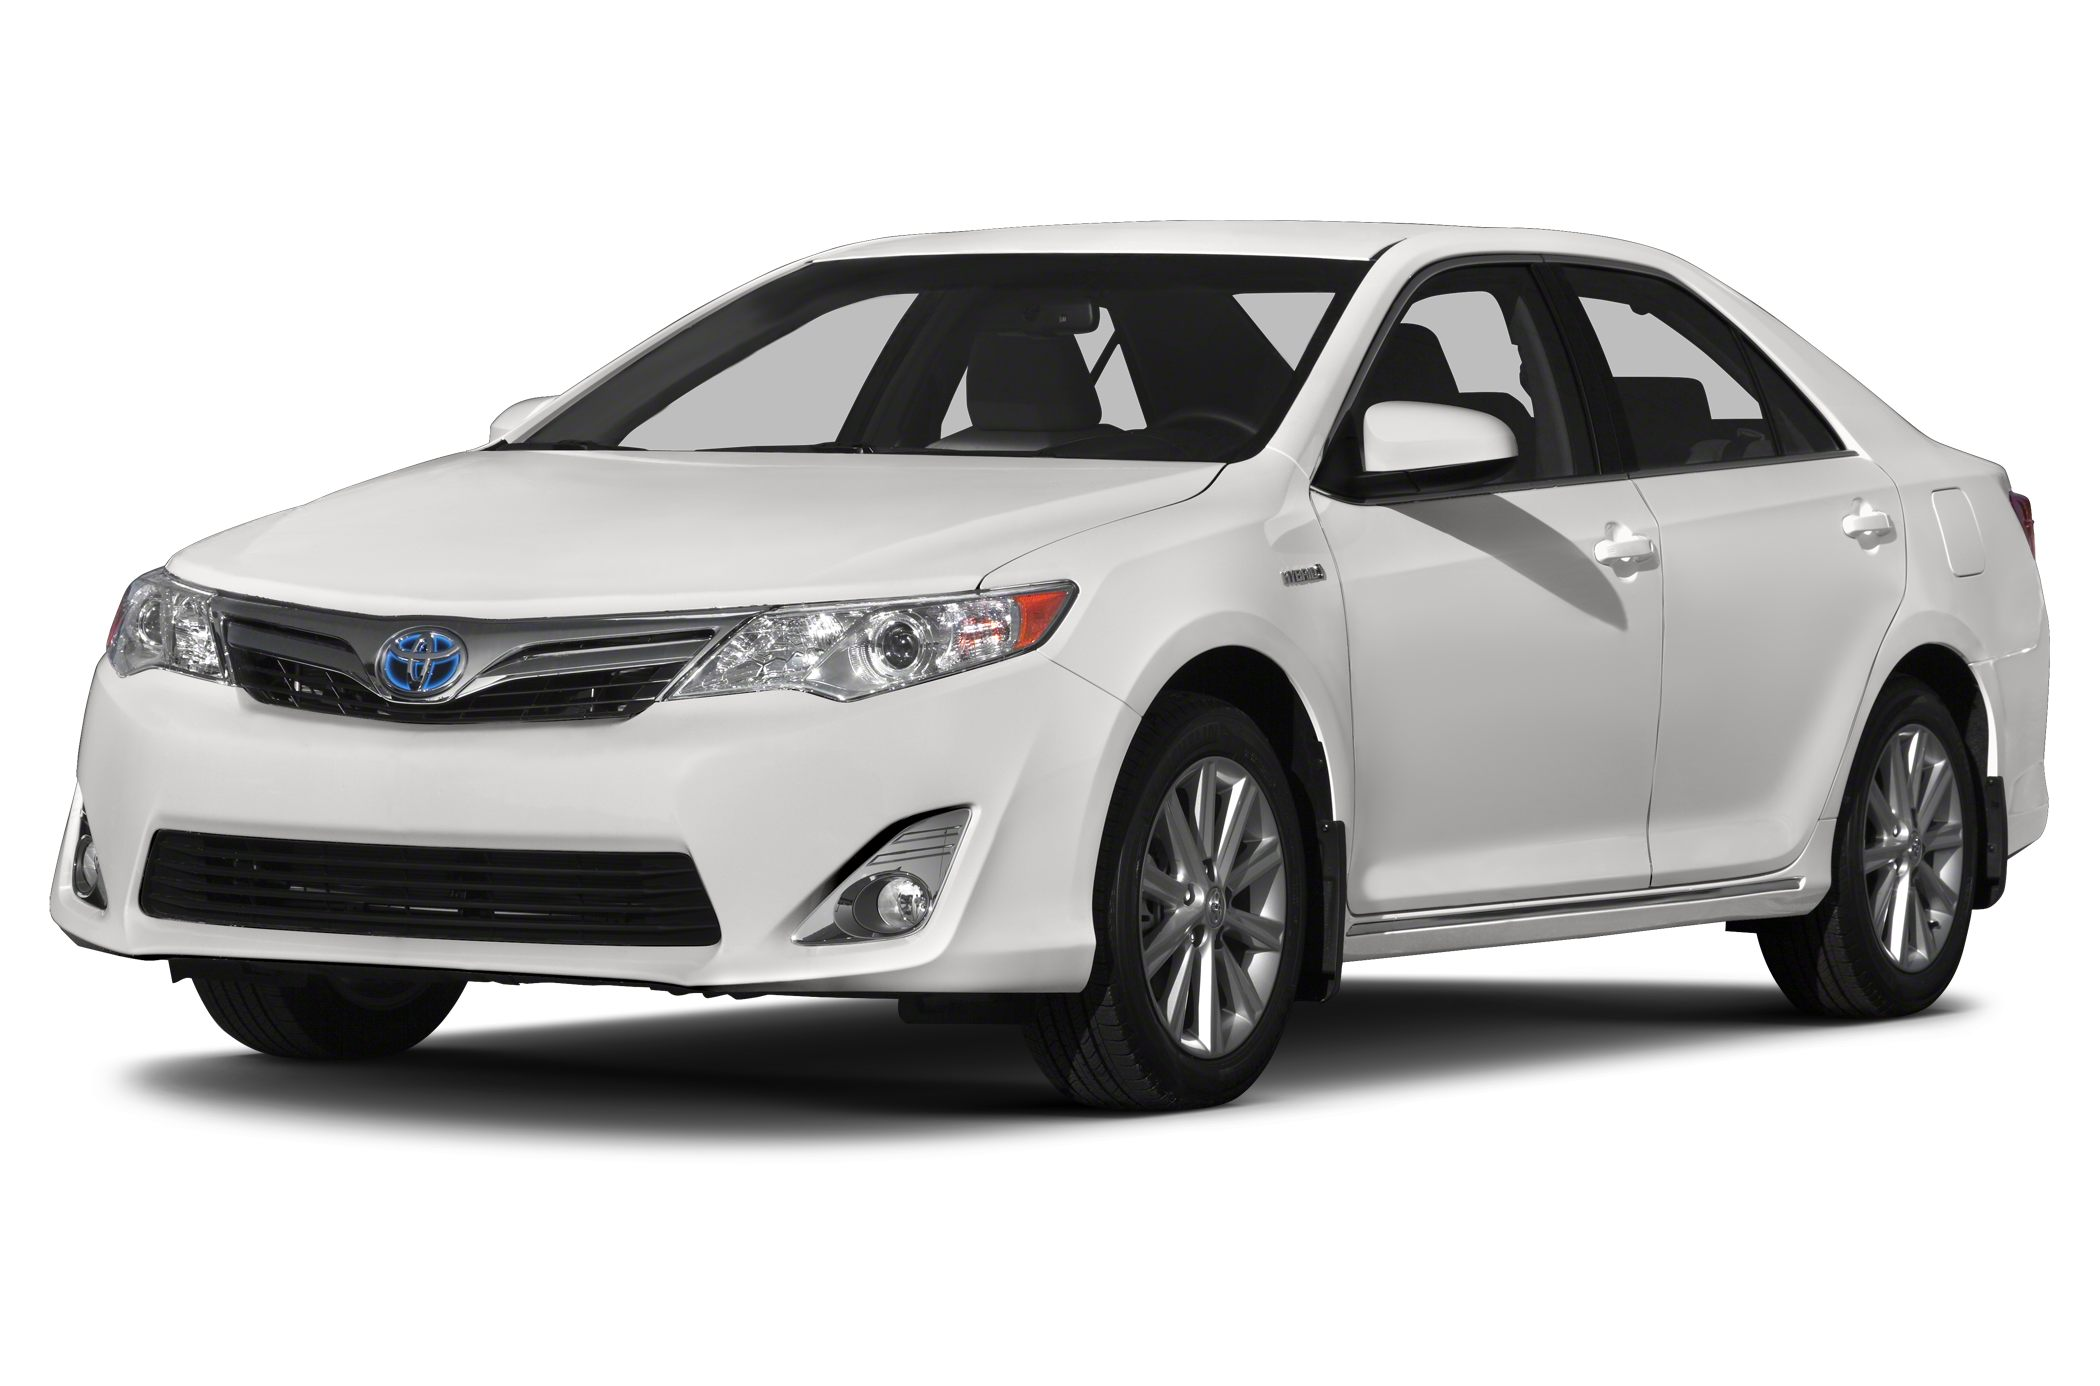 2014 Toyota Camry Hybrid XLE Sedan for sale in Honolulu for $23,500 with 17,290 miles